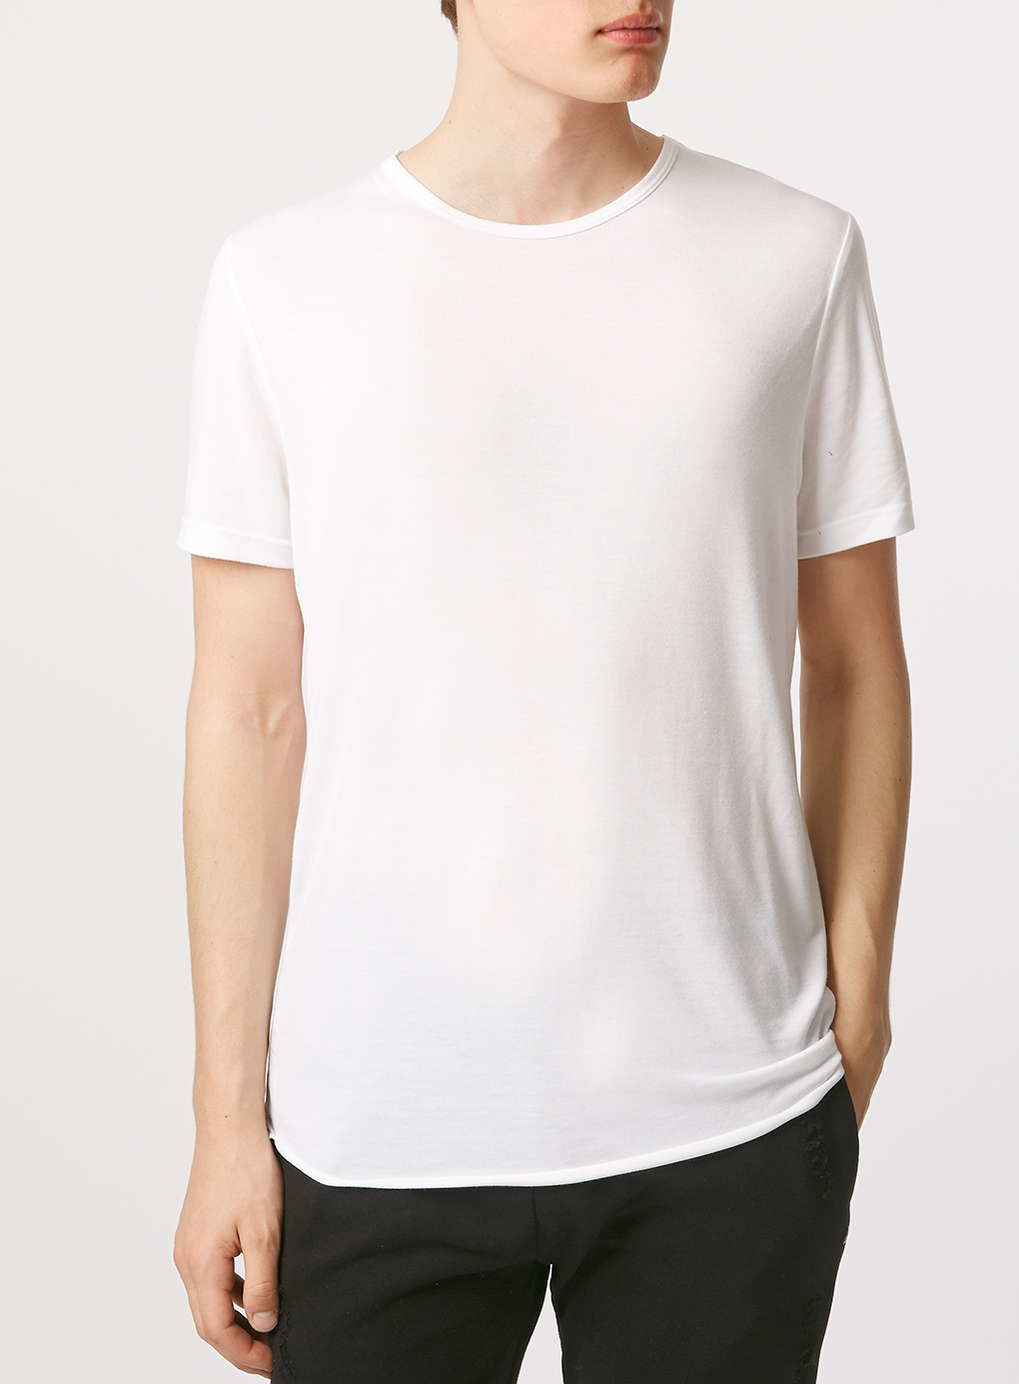 topman white drapey slim fit t shirt in white for men. Black Bedroom Furniture Sets. Home Design Ideas